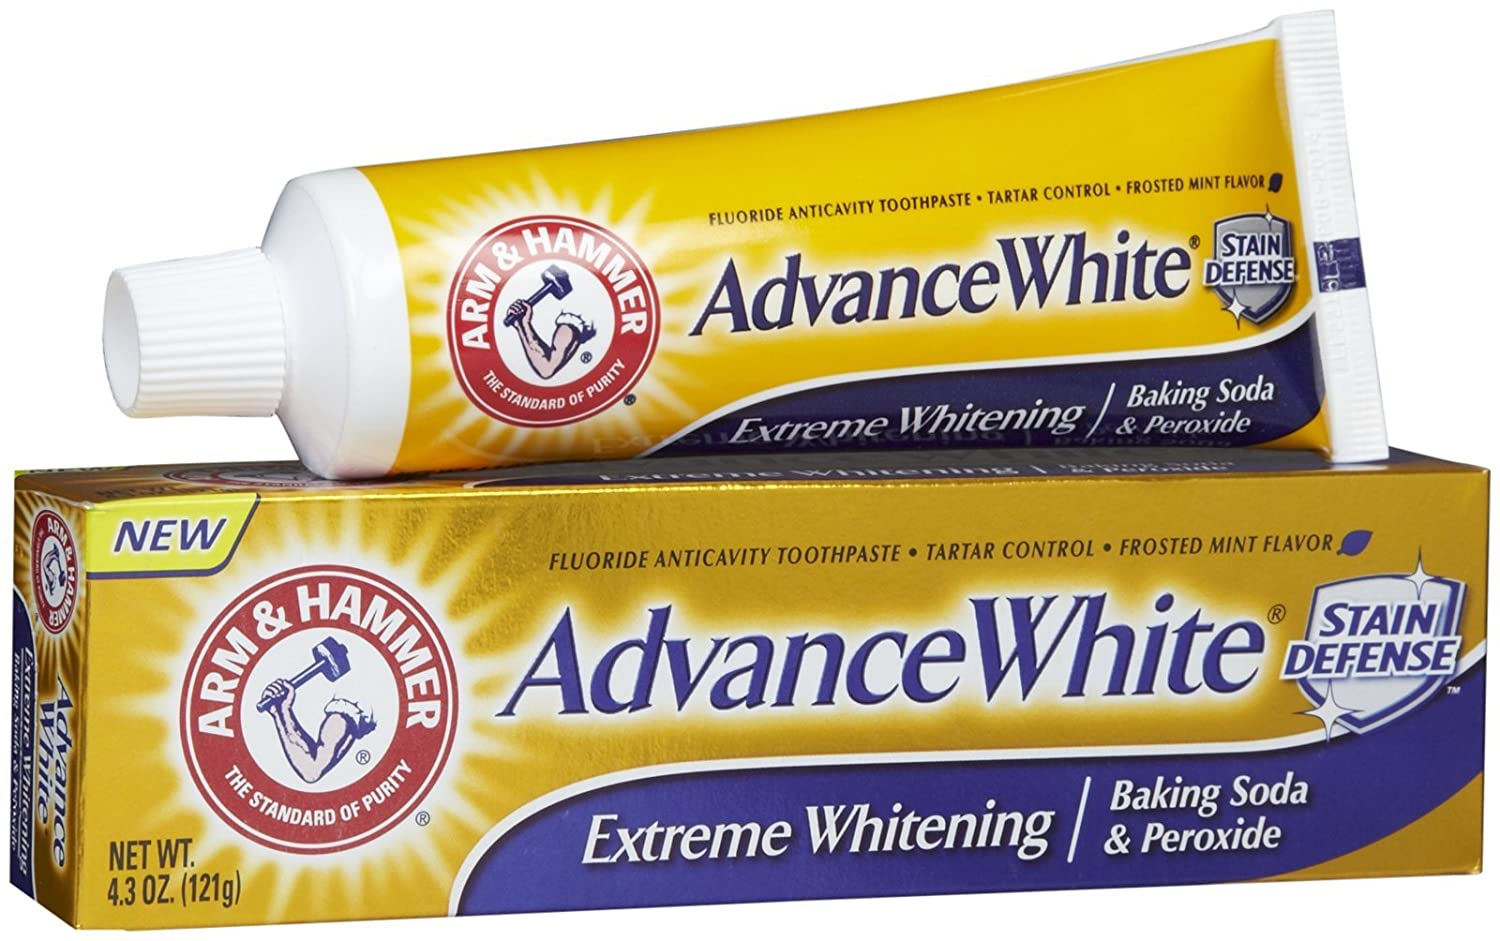 ARM & HAMMER Advance White Baking Soda & Peroxide Toothpaste, Extreme Whitening 4.3 oz (Pack of 2)